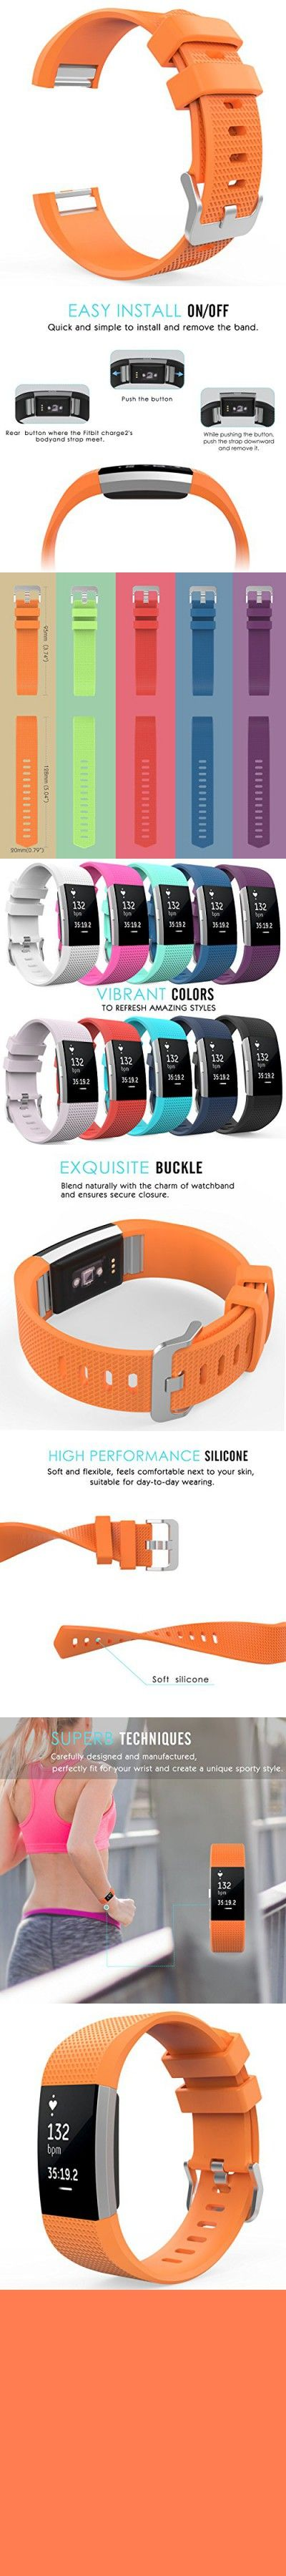 """Fitbit Charge 2 Band, MoKo Soft Silicone Adjustable Replacement Sport Strap Band for Fitbit Charge 2 Heart Rate + Fitness Wristband, Wrist Length 5.70""""-8.26"""" (145mm-210mm), ORANGE"""